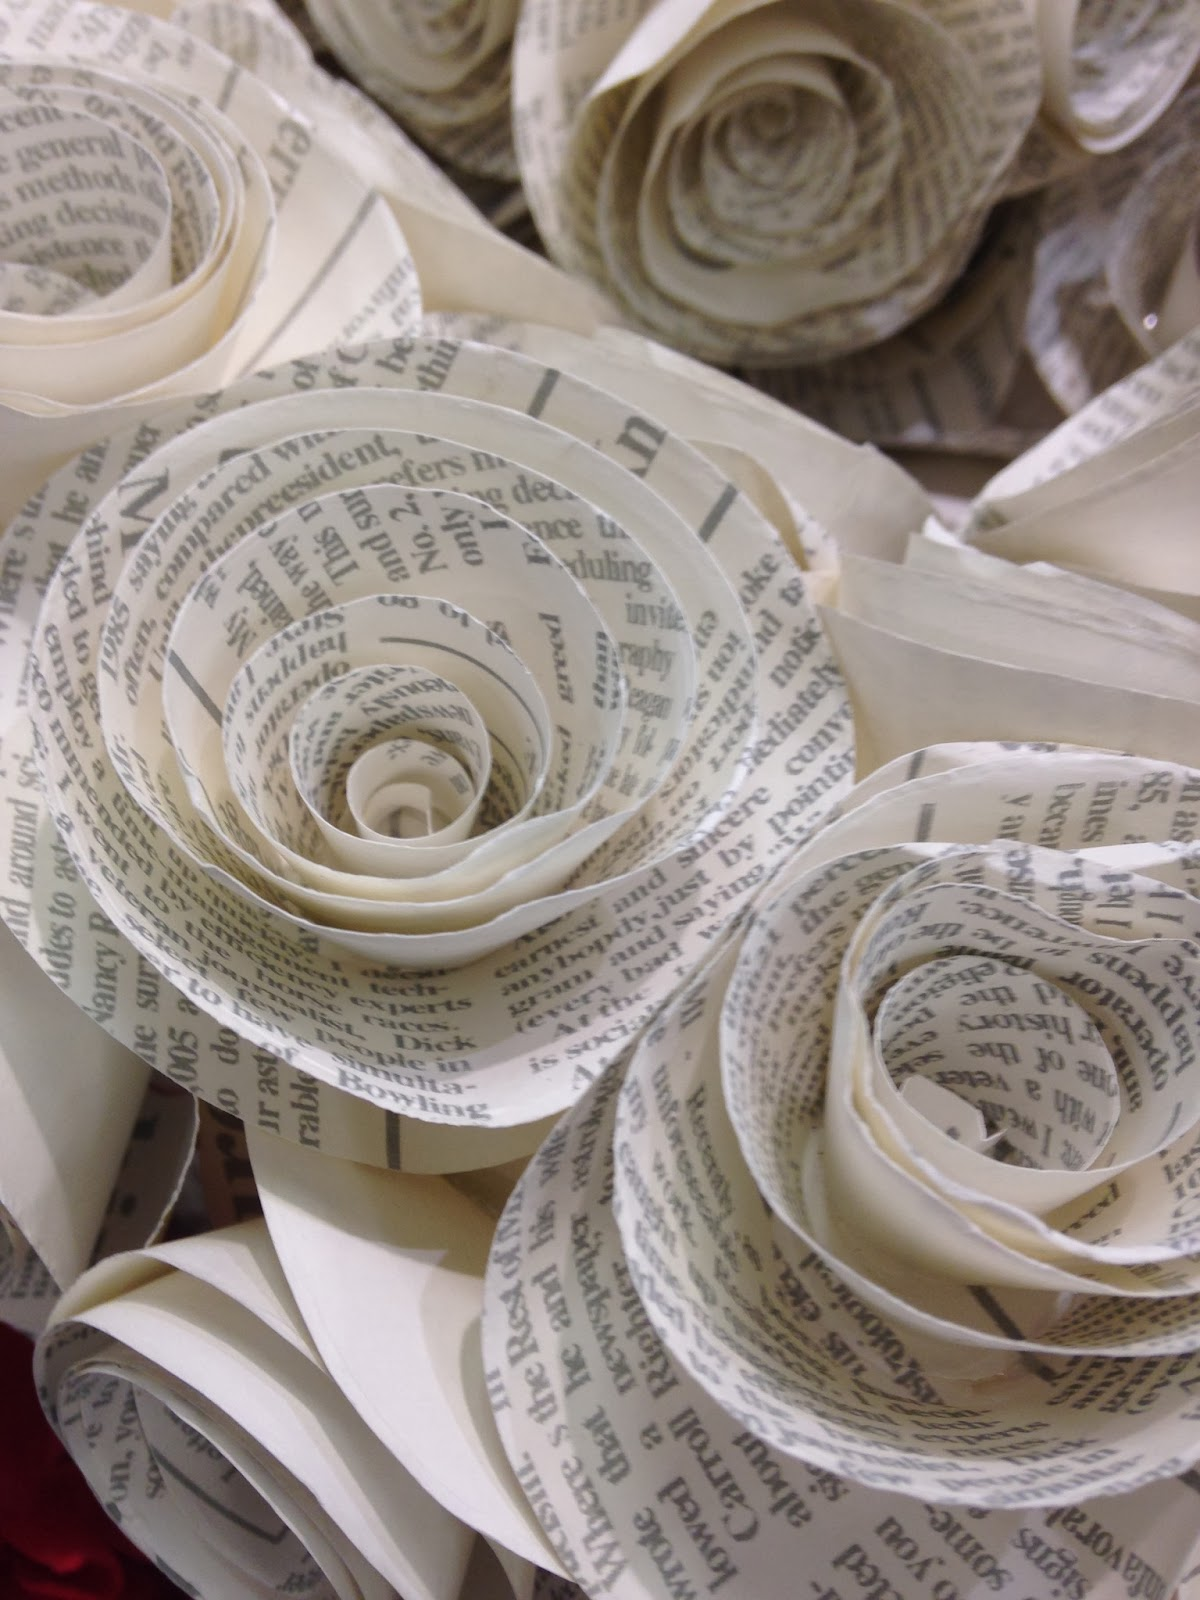 Paper heart wreath close-up